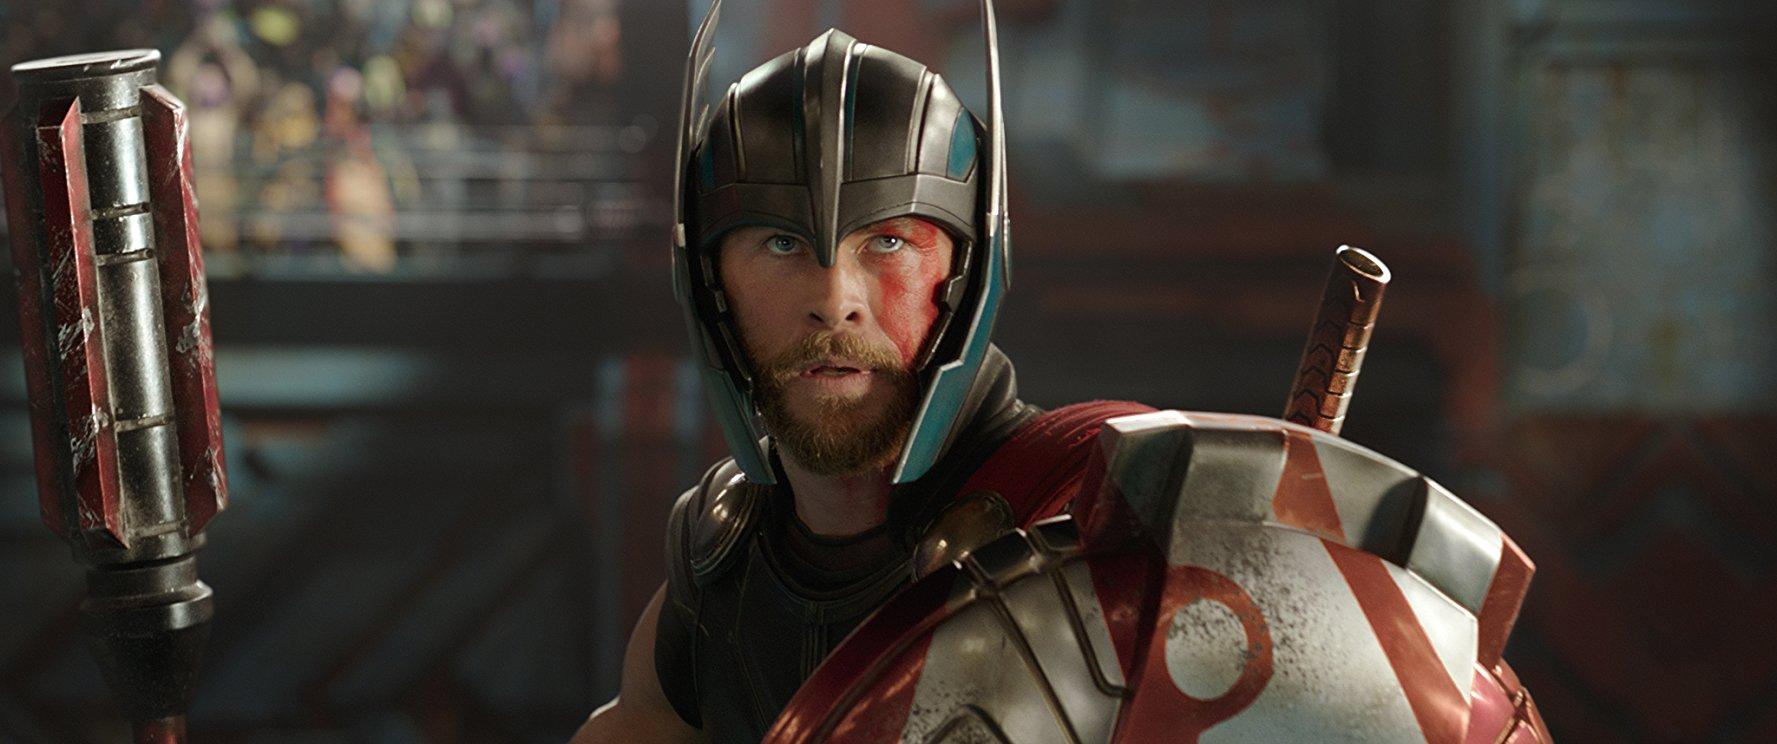 """MARVEL Chris Hemsworth stars as the title character, Thor, the Nordic god of thunder. """"Thor: Ragnarok"""" opened with over $123 million in its opening weekend, making it the fourth largest opening for the year."""